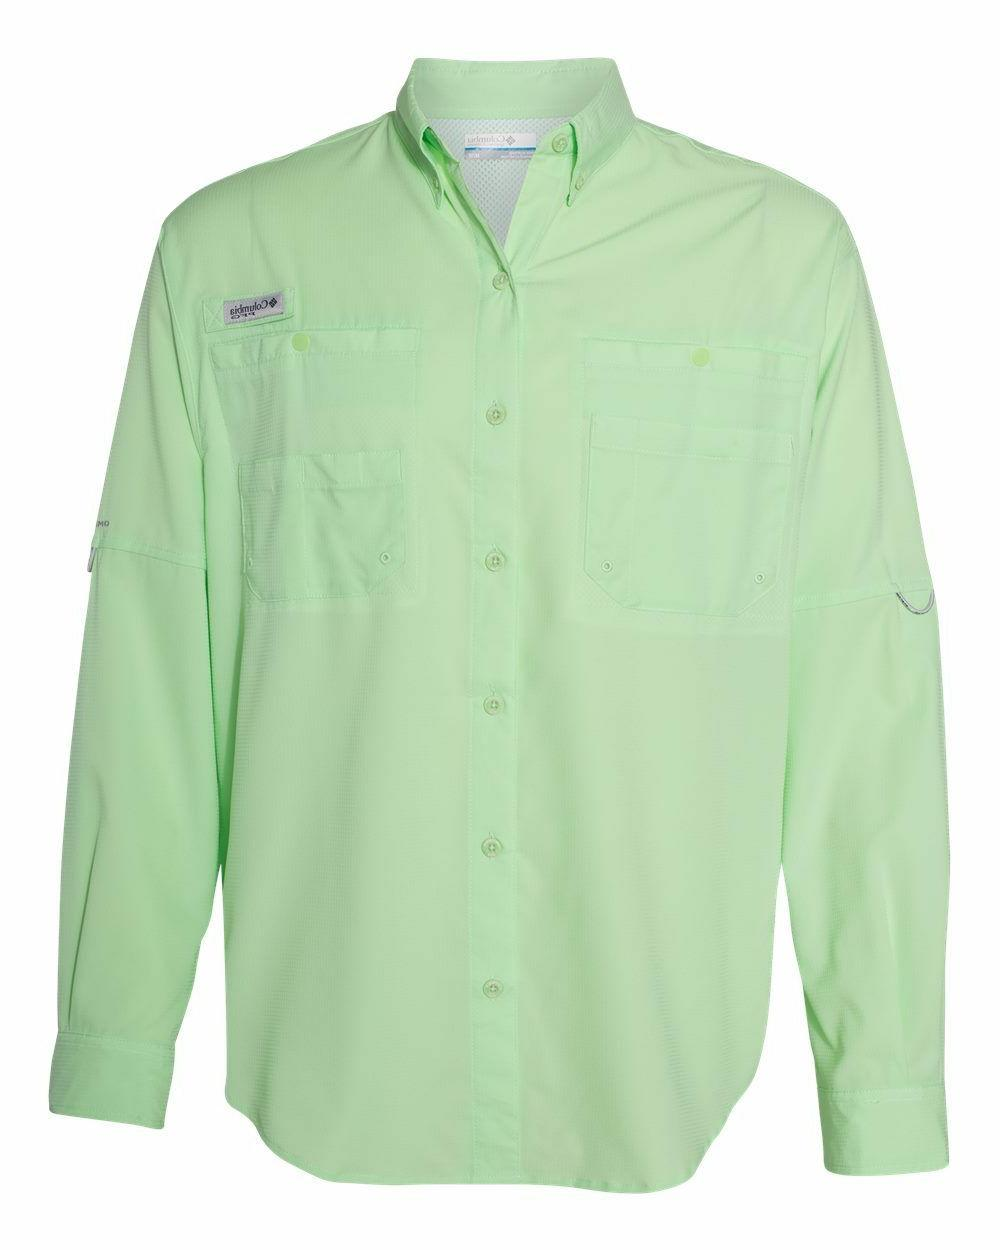 Columbia - Men's Tamiami II, Shirt, Sizes